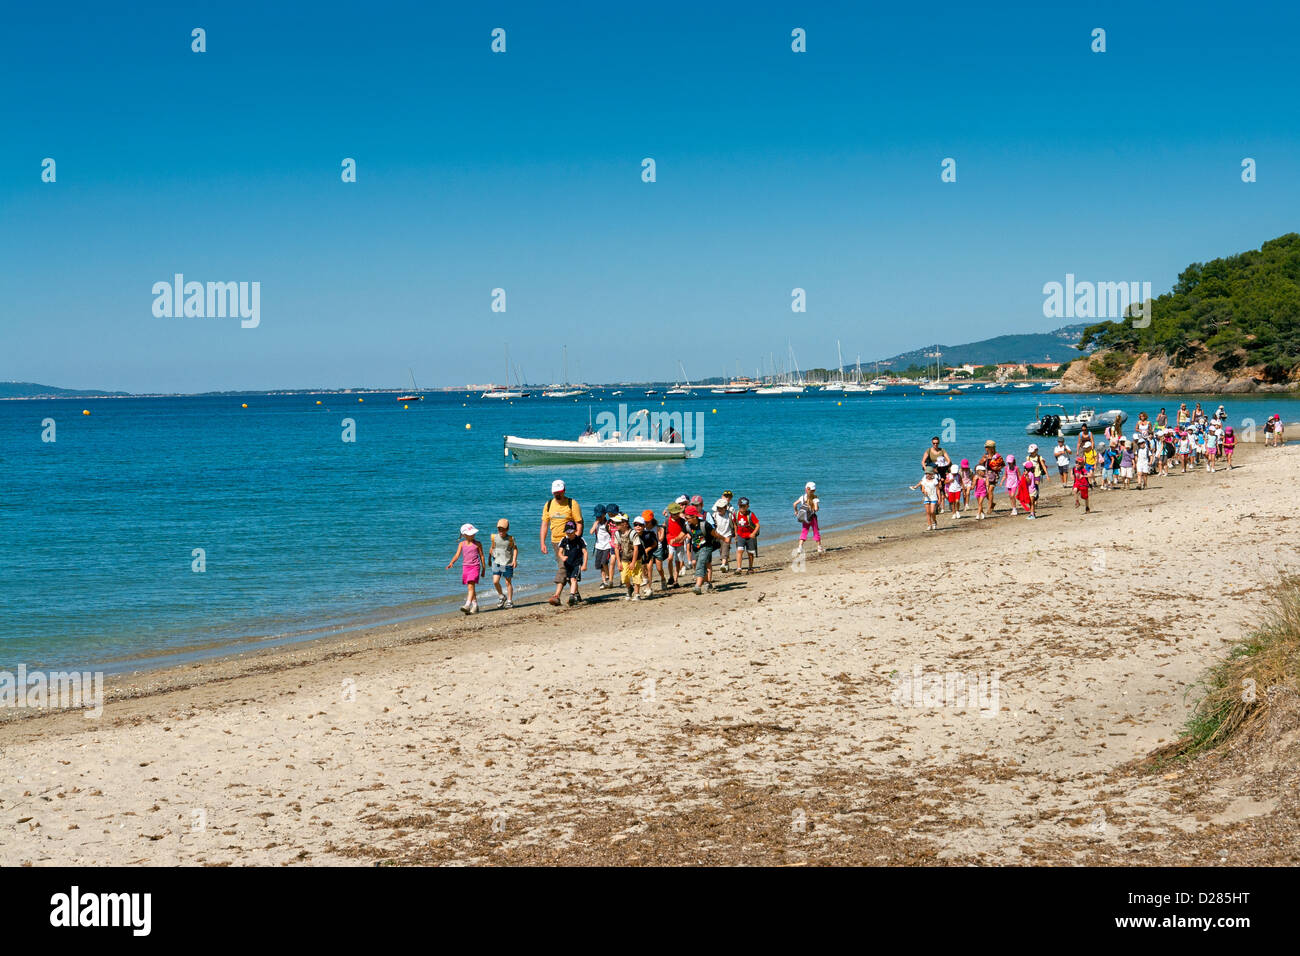 School outing on Plage du Pellegrin, a secluded beach near Bormes-les-Mimosas, Var, Provence, France - Stock Image